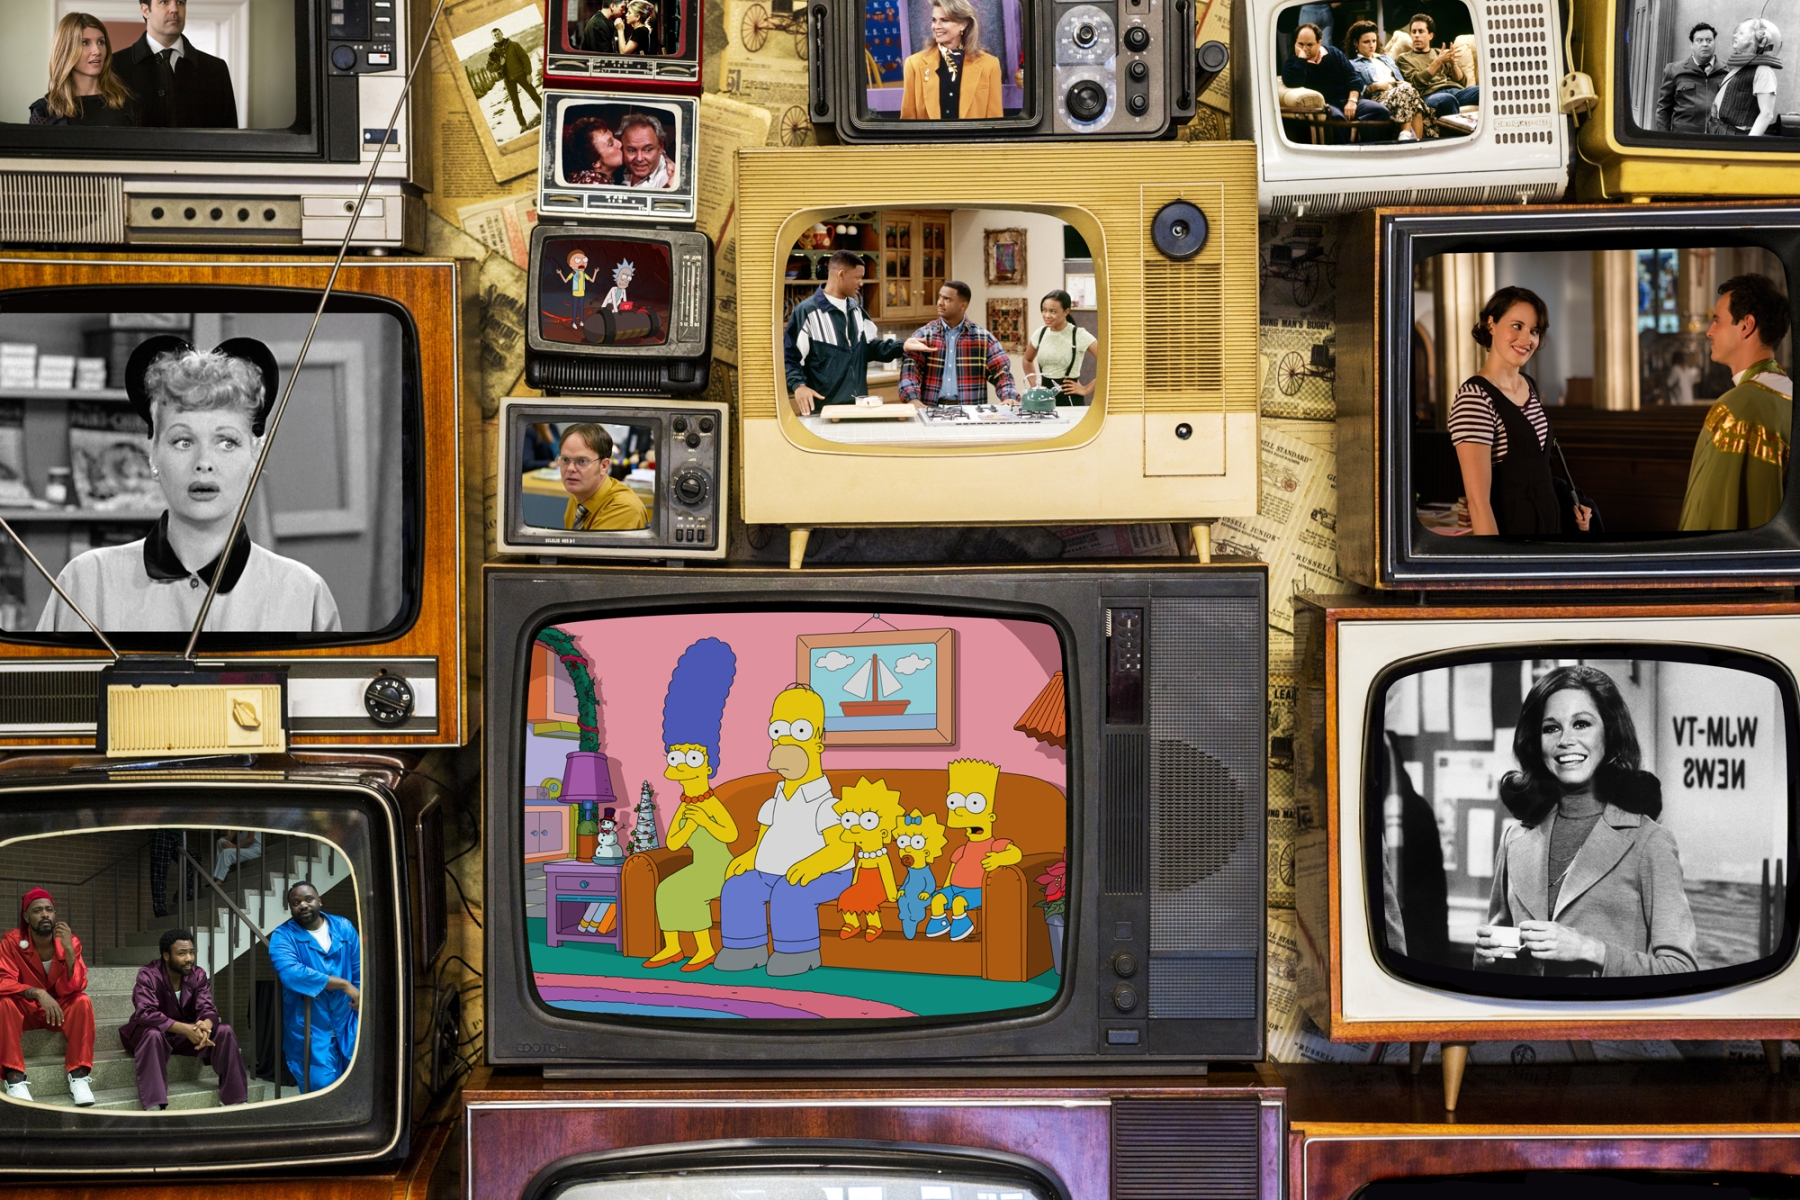 Many old televisions bundled together. A wall of old vintage tube televisions.